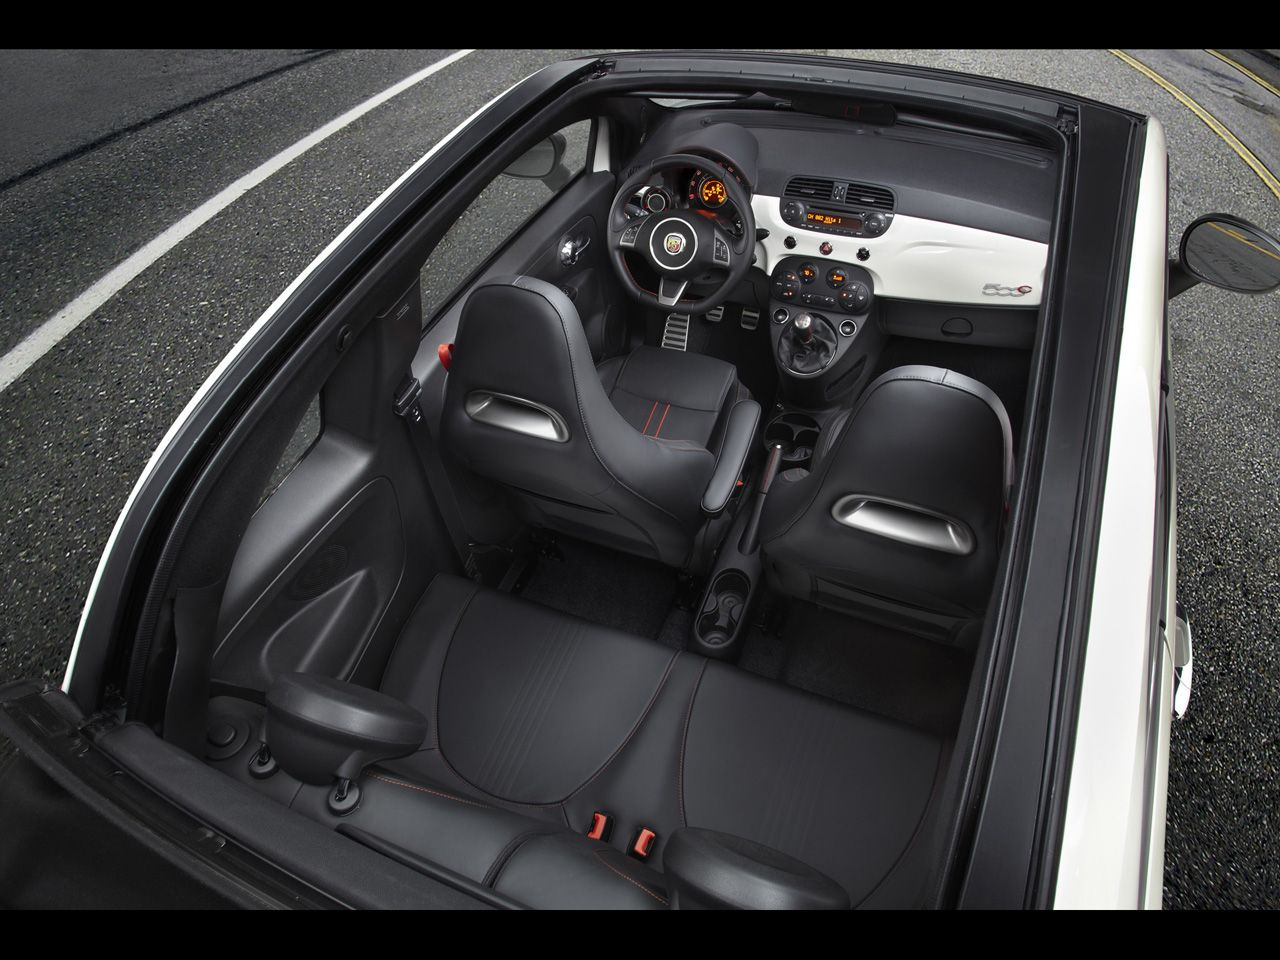 2013 Fiat 500 Abarth and 500c Abarth - Interior Top - 1280x960 ...